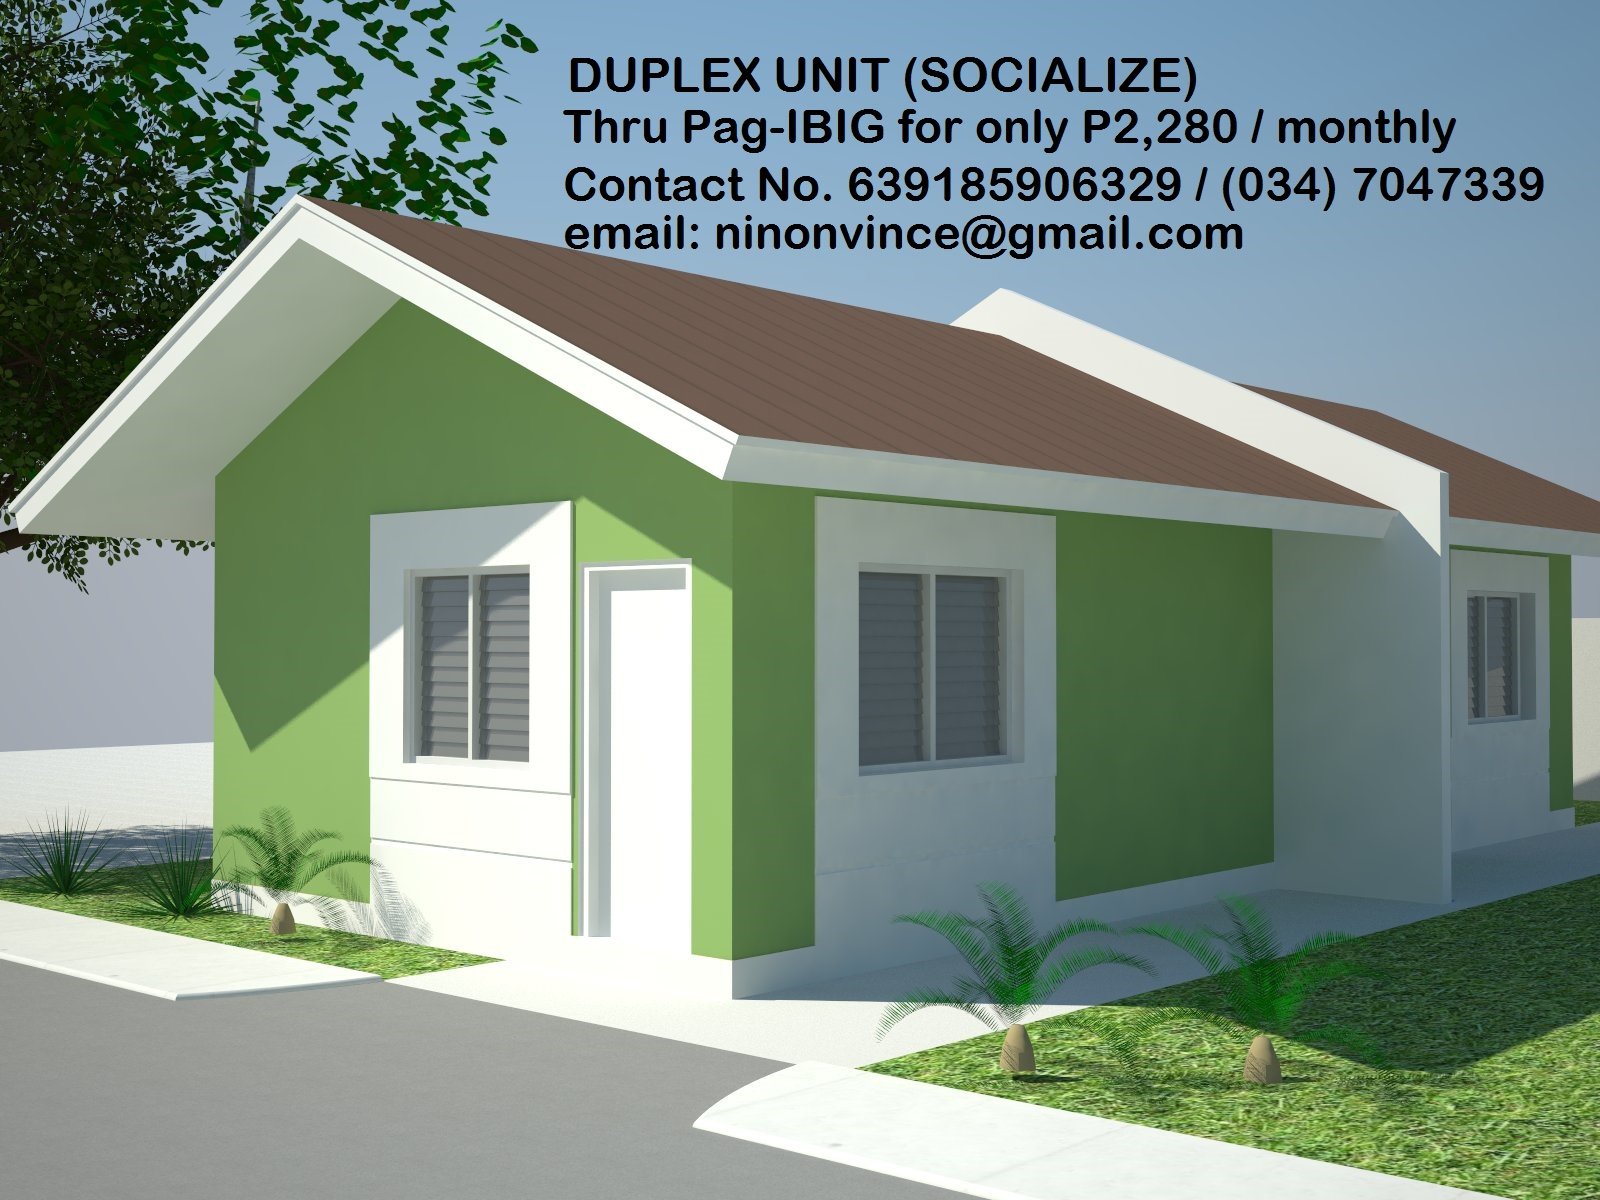 Contact: VINCE YBANEZ (Lueterio Realty & Brokerage - AGENT I.D. No. 8210)  Contact Nos. 639 185 906 329 / (034) 704-73-39 email: vinceninon@gmail.com Chat me in Facebook Page, Vince Ybanez, with the Leuterio Realty & Brokerage logo on the cover photo.